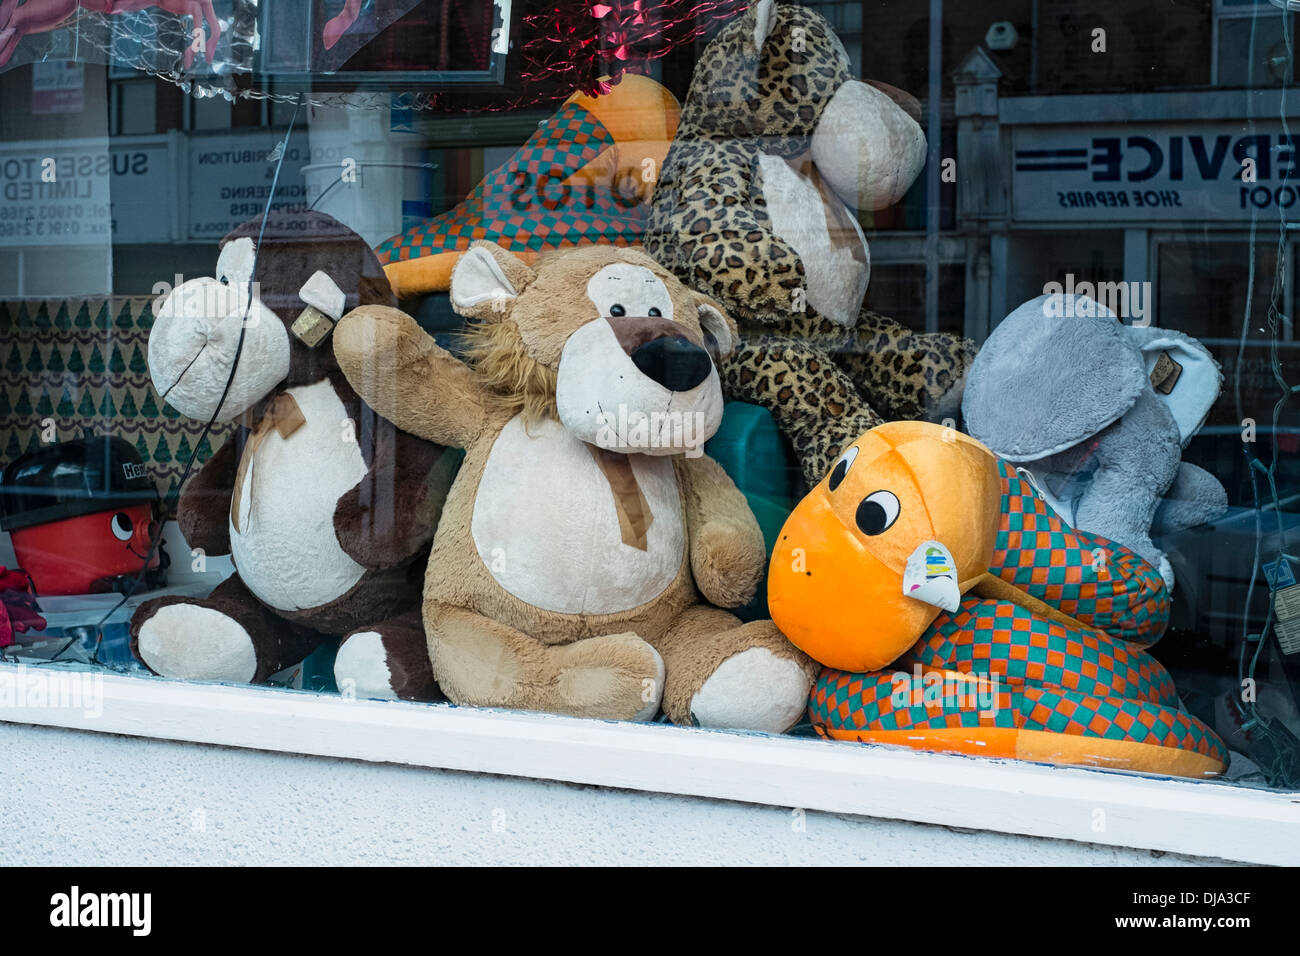 Used soft toys in a shop window - Stock Image